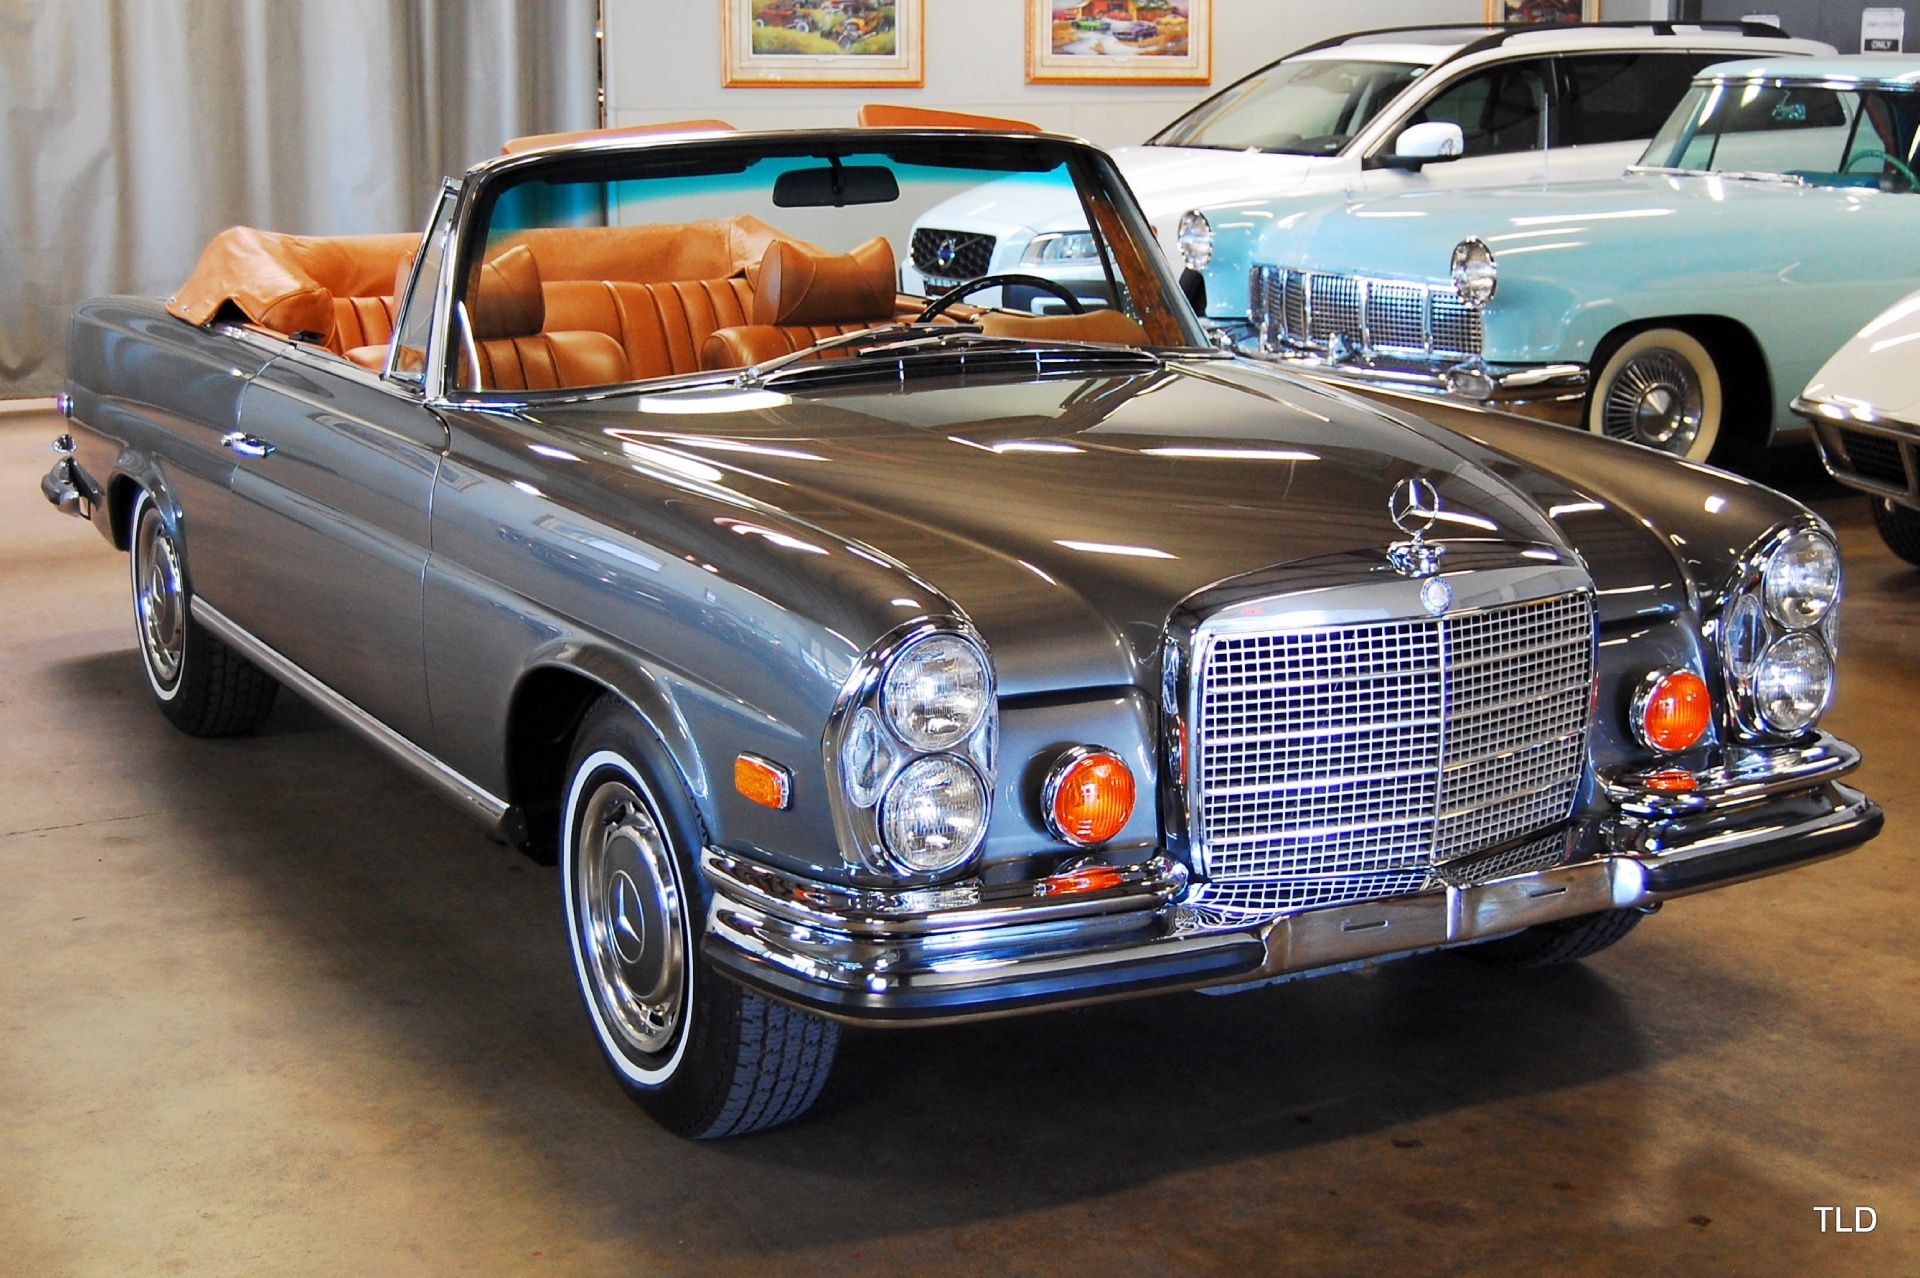 1970 mercedes benz 280se cabriolet. Black Bedroom Furniture Sets. Home Design Ideas